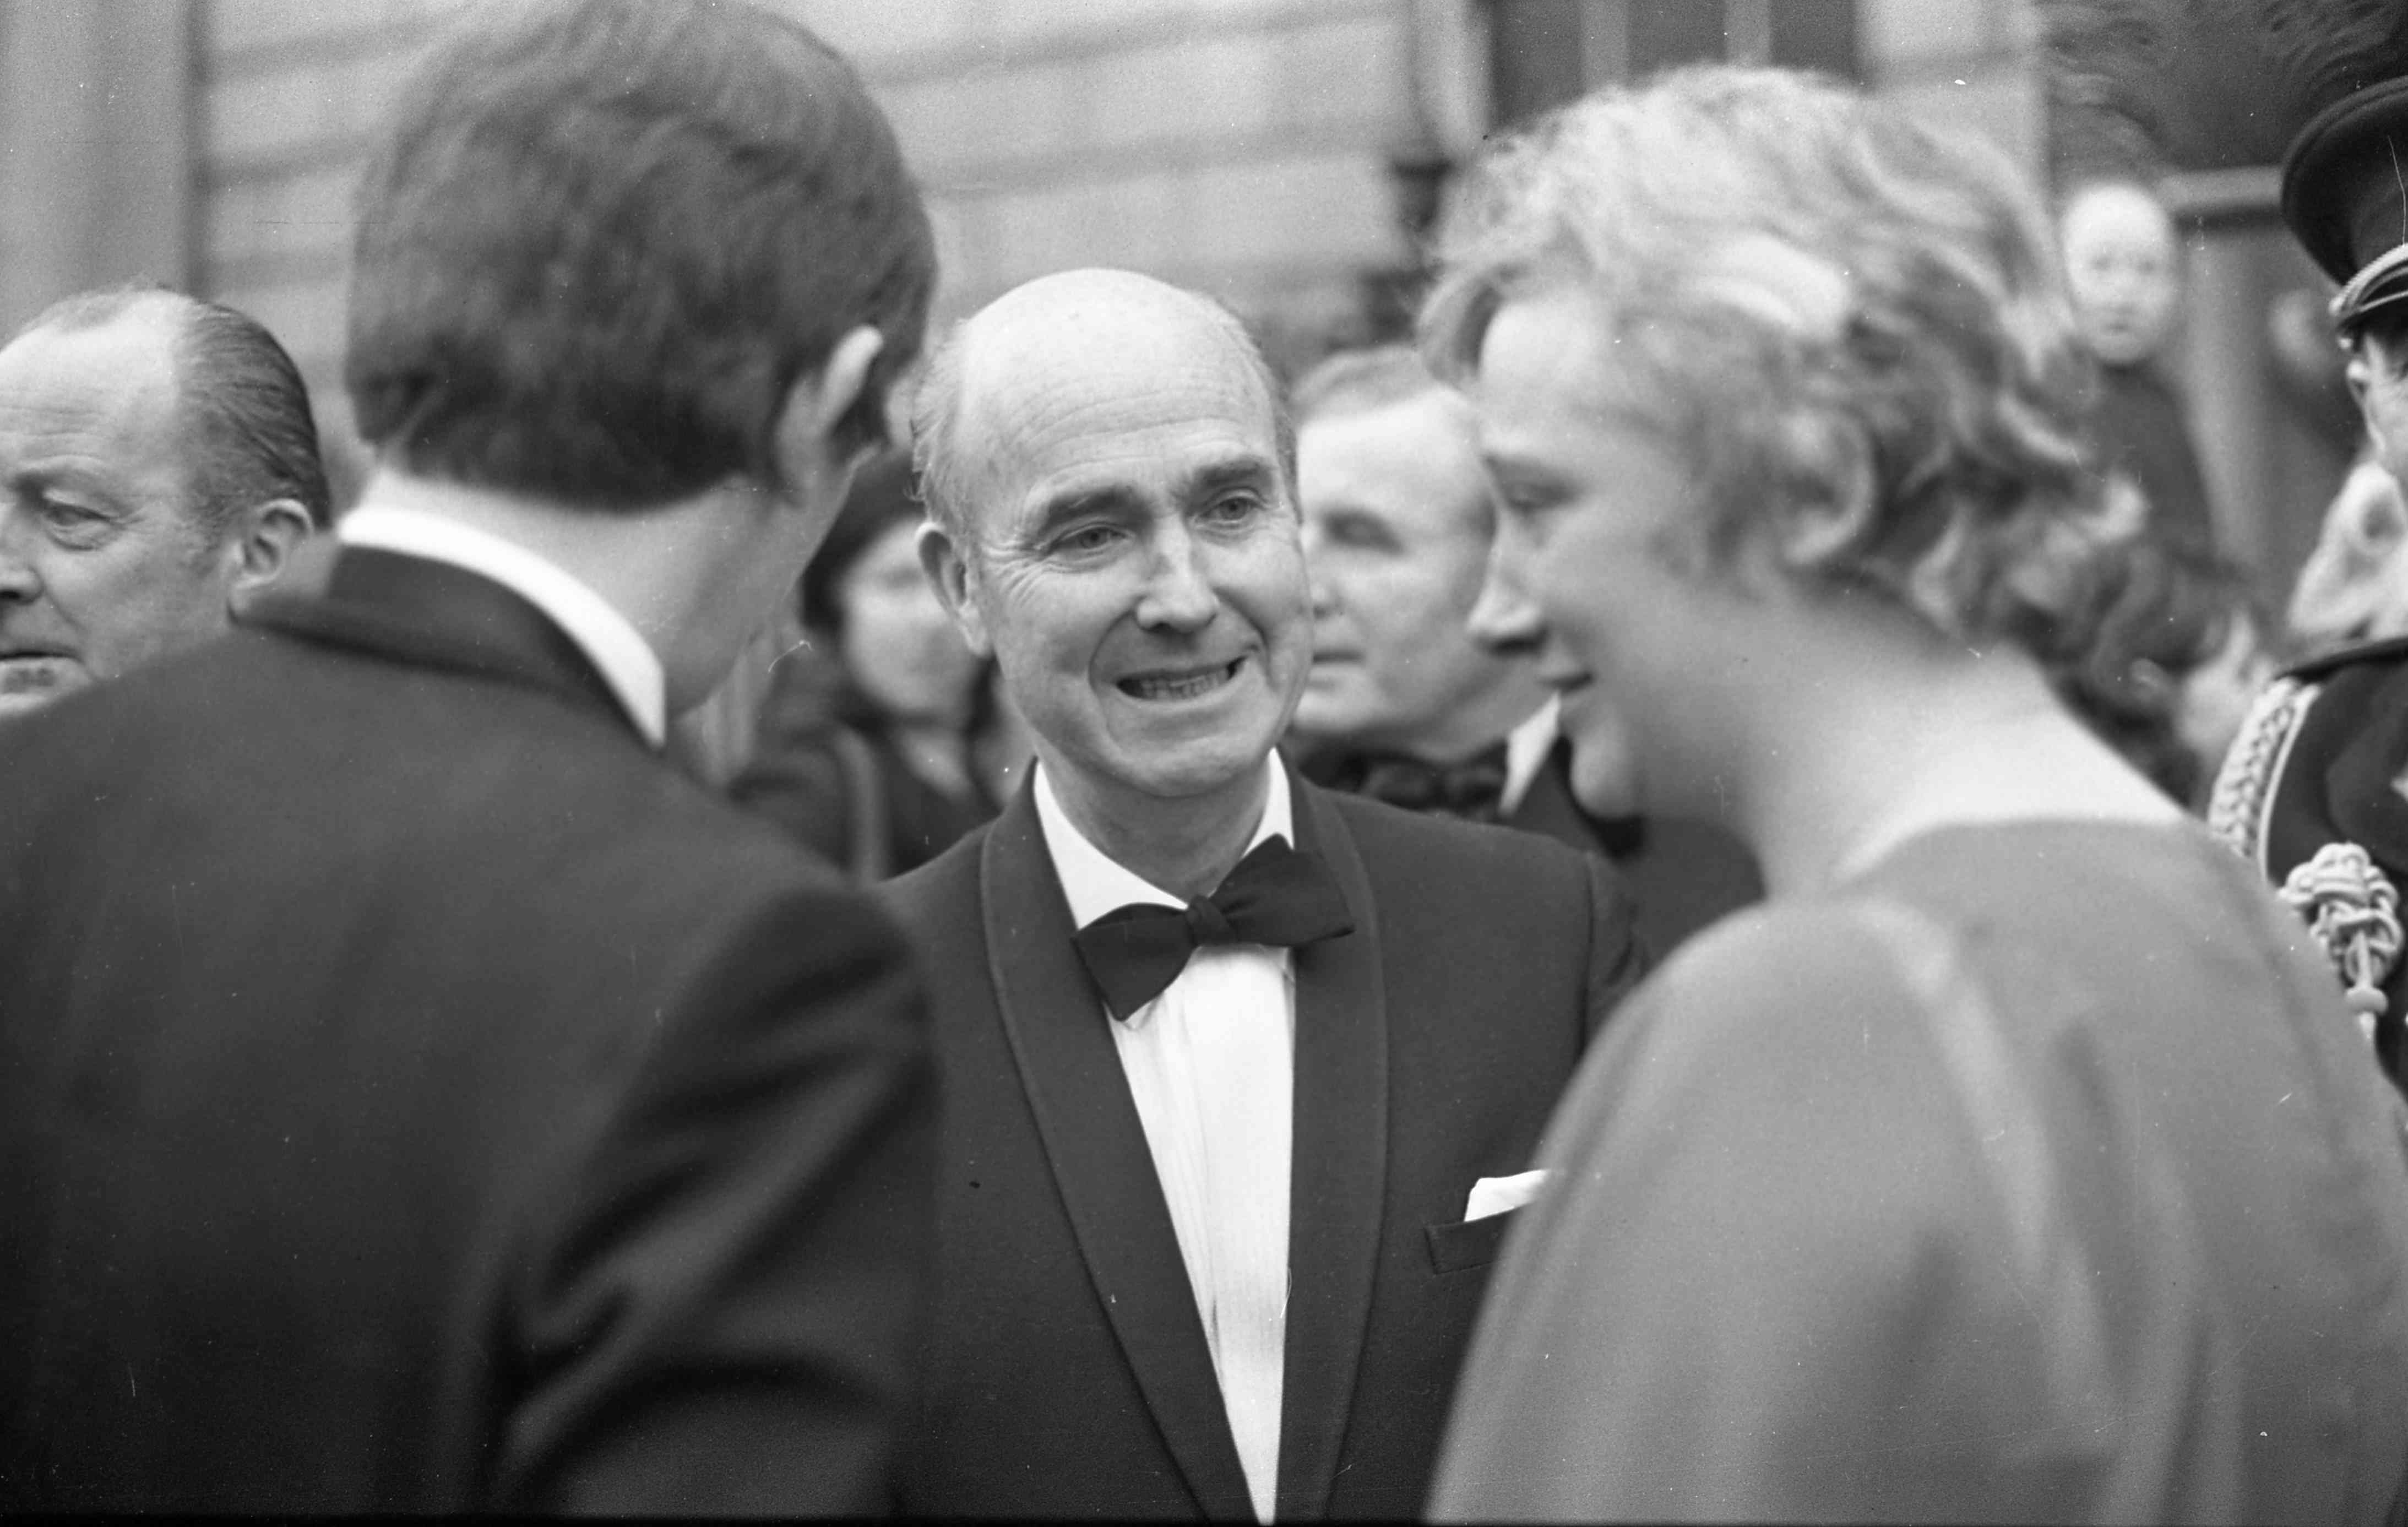 President Cearbhall O'Dalaigh at the Wedding of James Ryan and Kathryn Danaher 1975